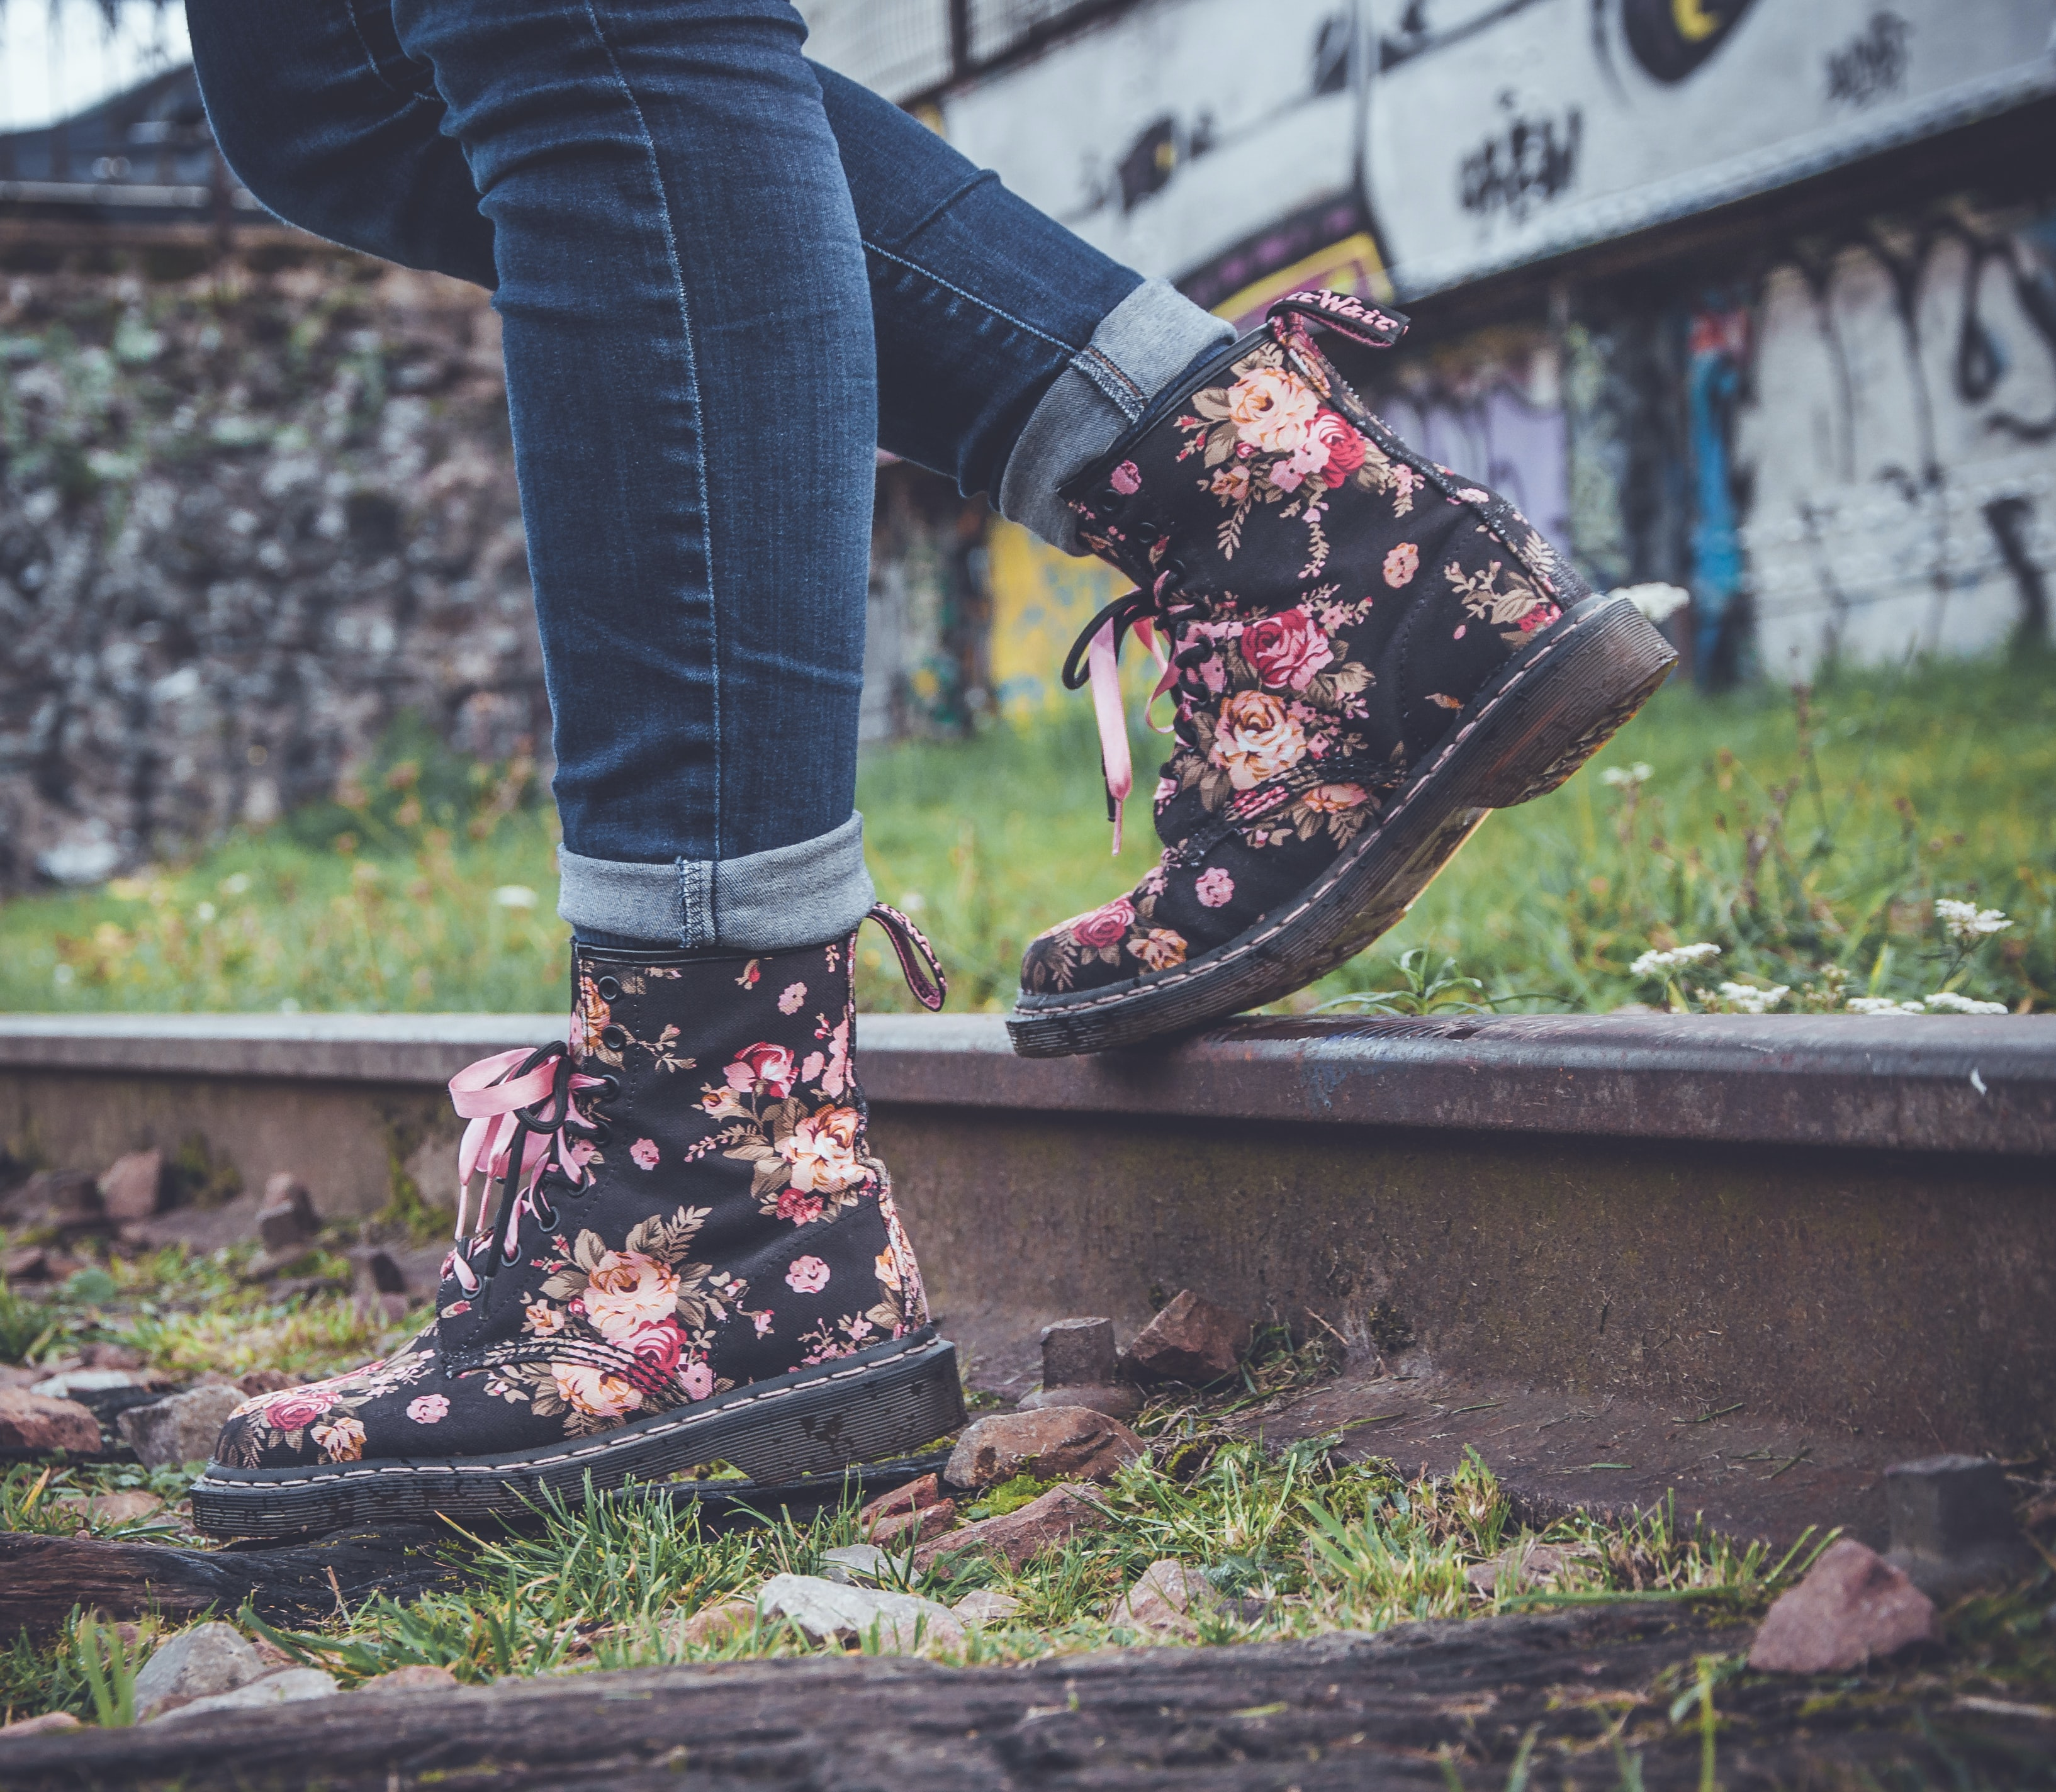 A close-up shot of a person wearing floral boots stepping on a railway track with graffiti behind